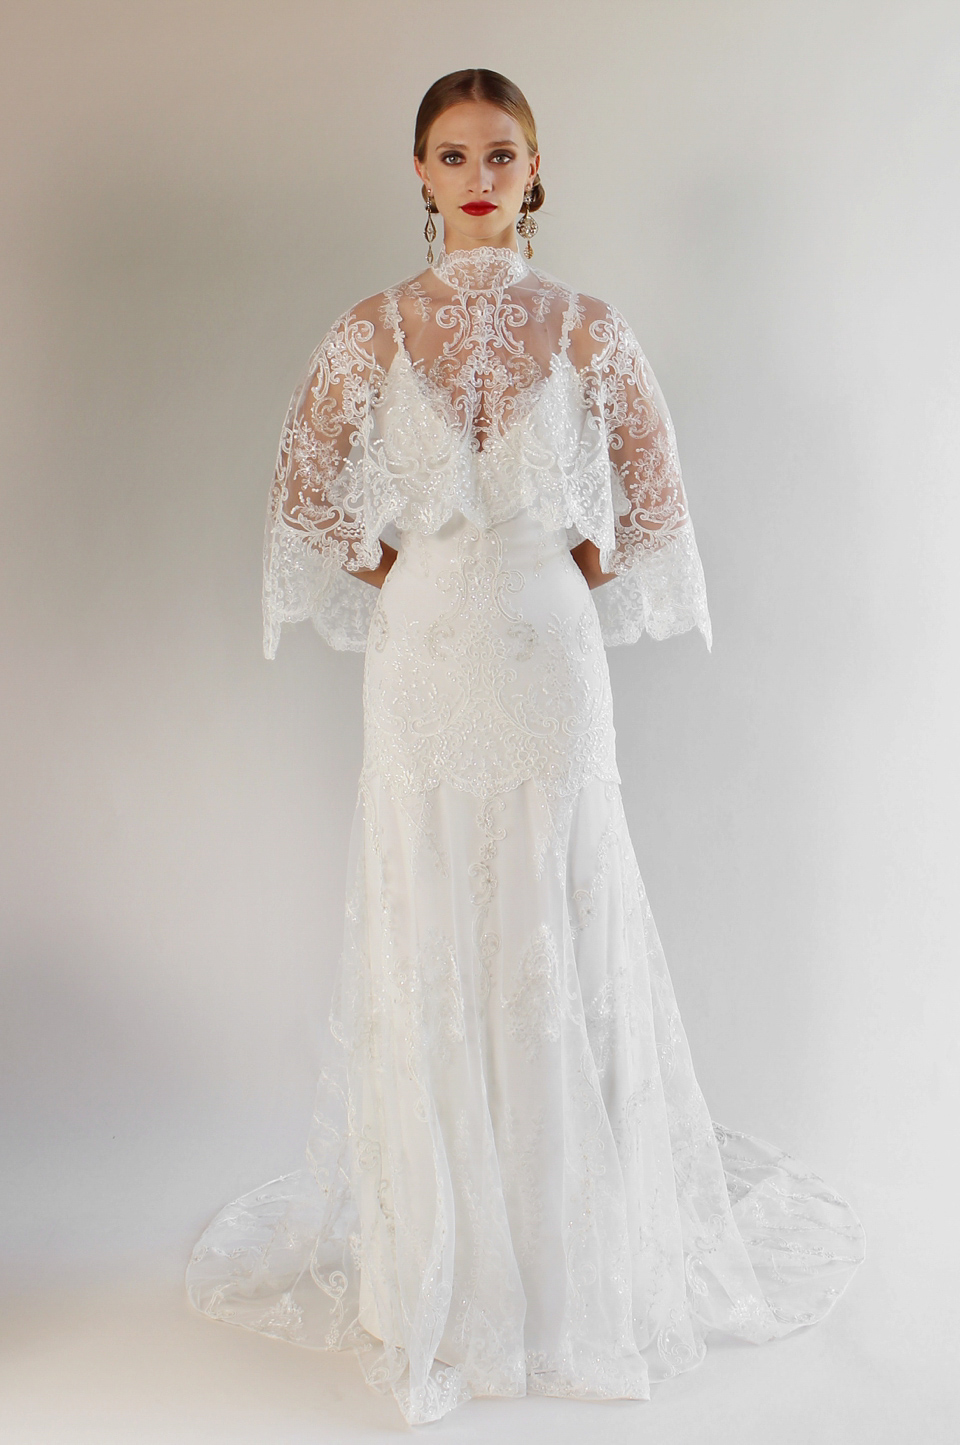 California Dreamin' – The New Collection from Romantique by Claire Pettibone